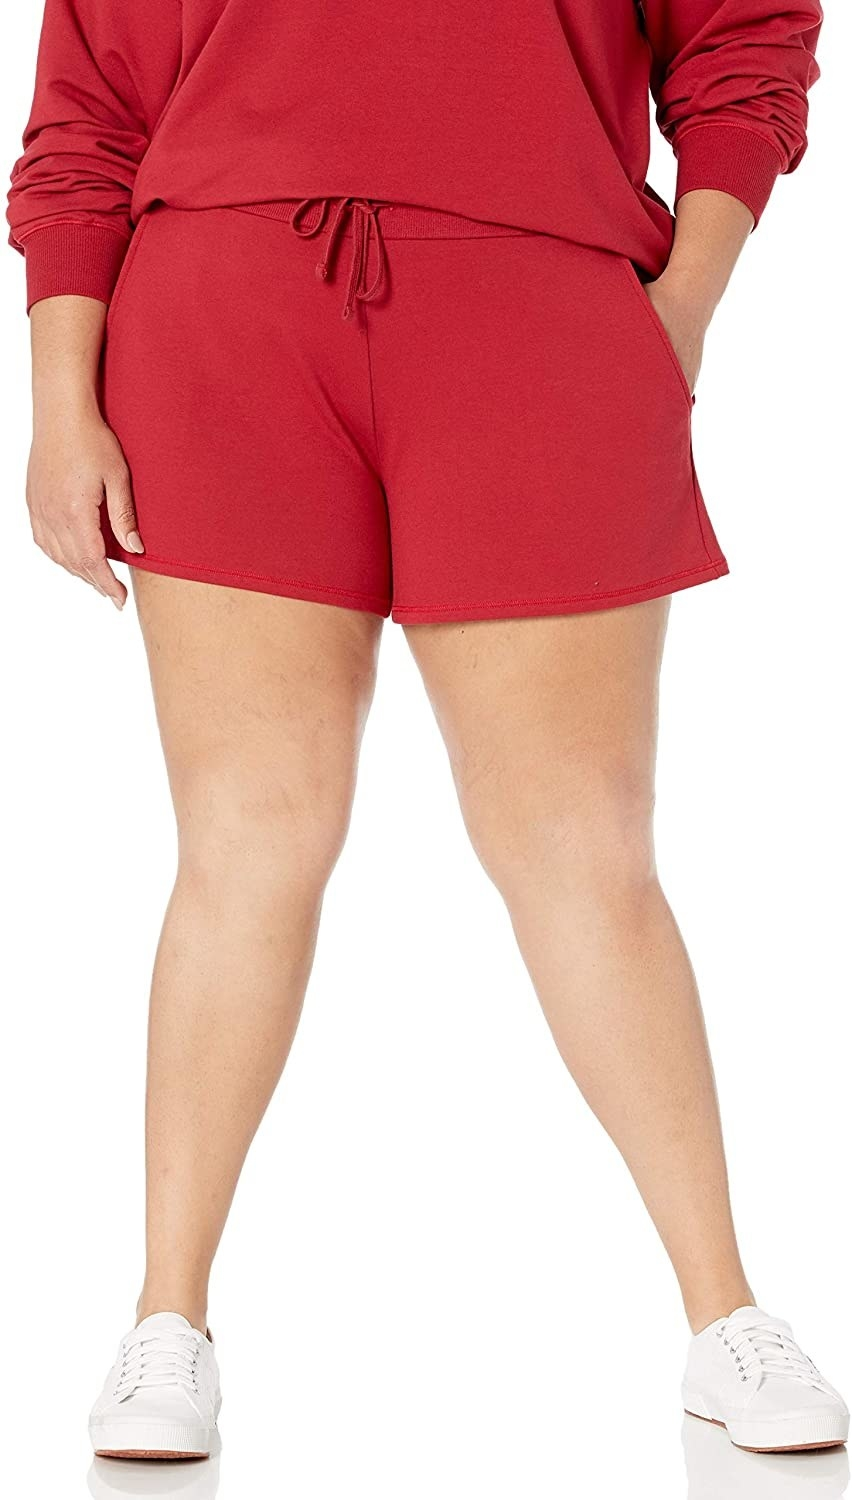 Model wears red shorts with matching sweatshirt and white sneakers